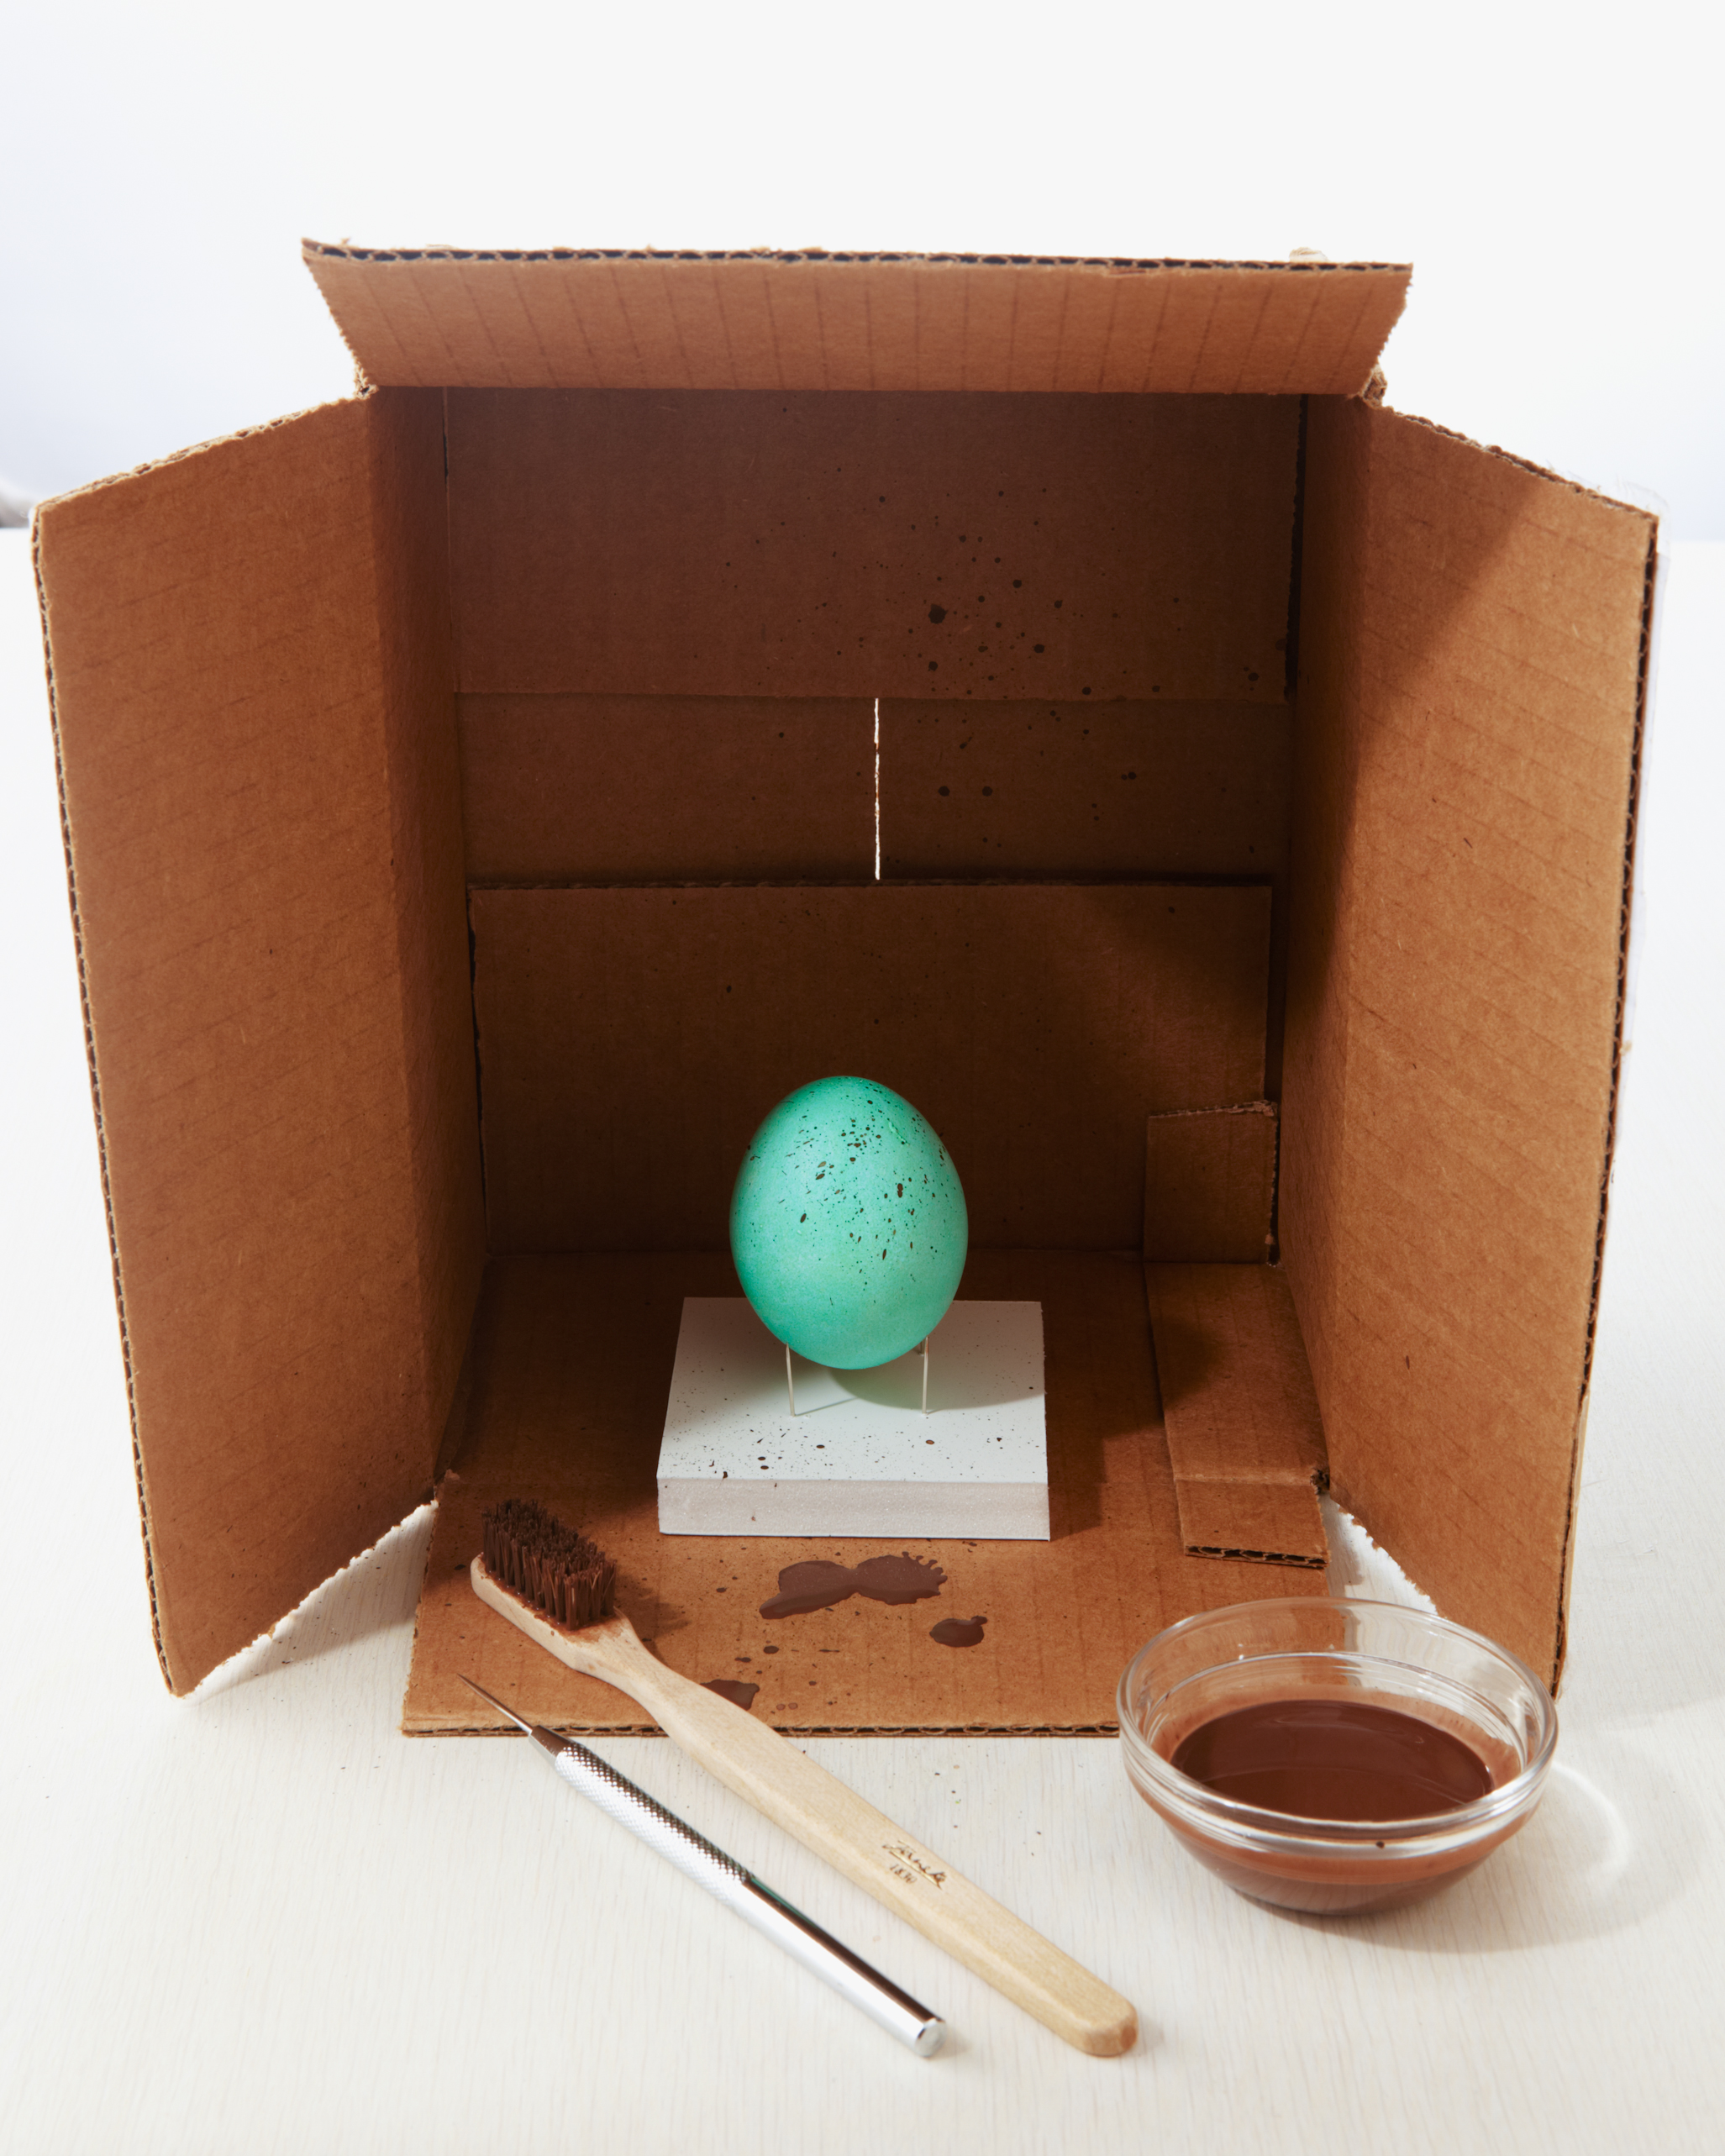 egg-dyeing-app-d107182-speckle-how-to0414.jpg